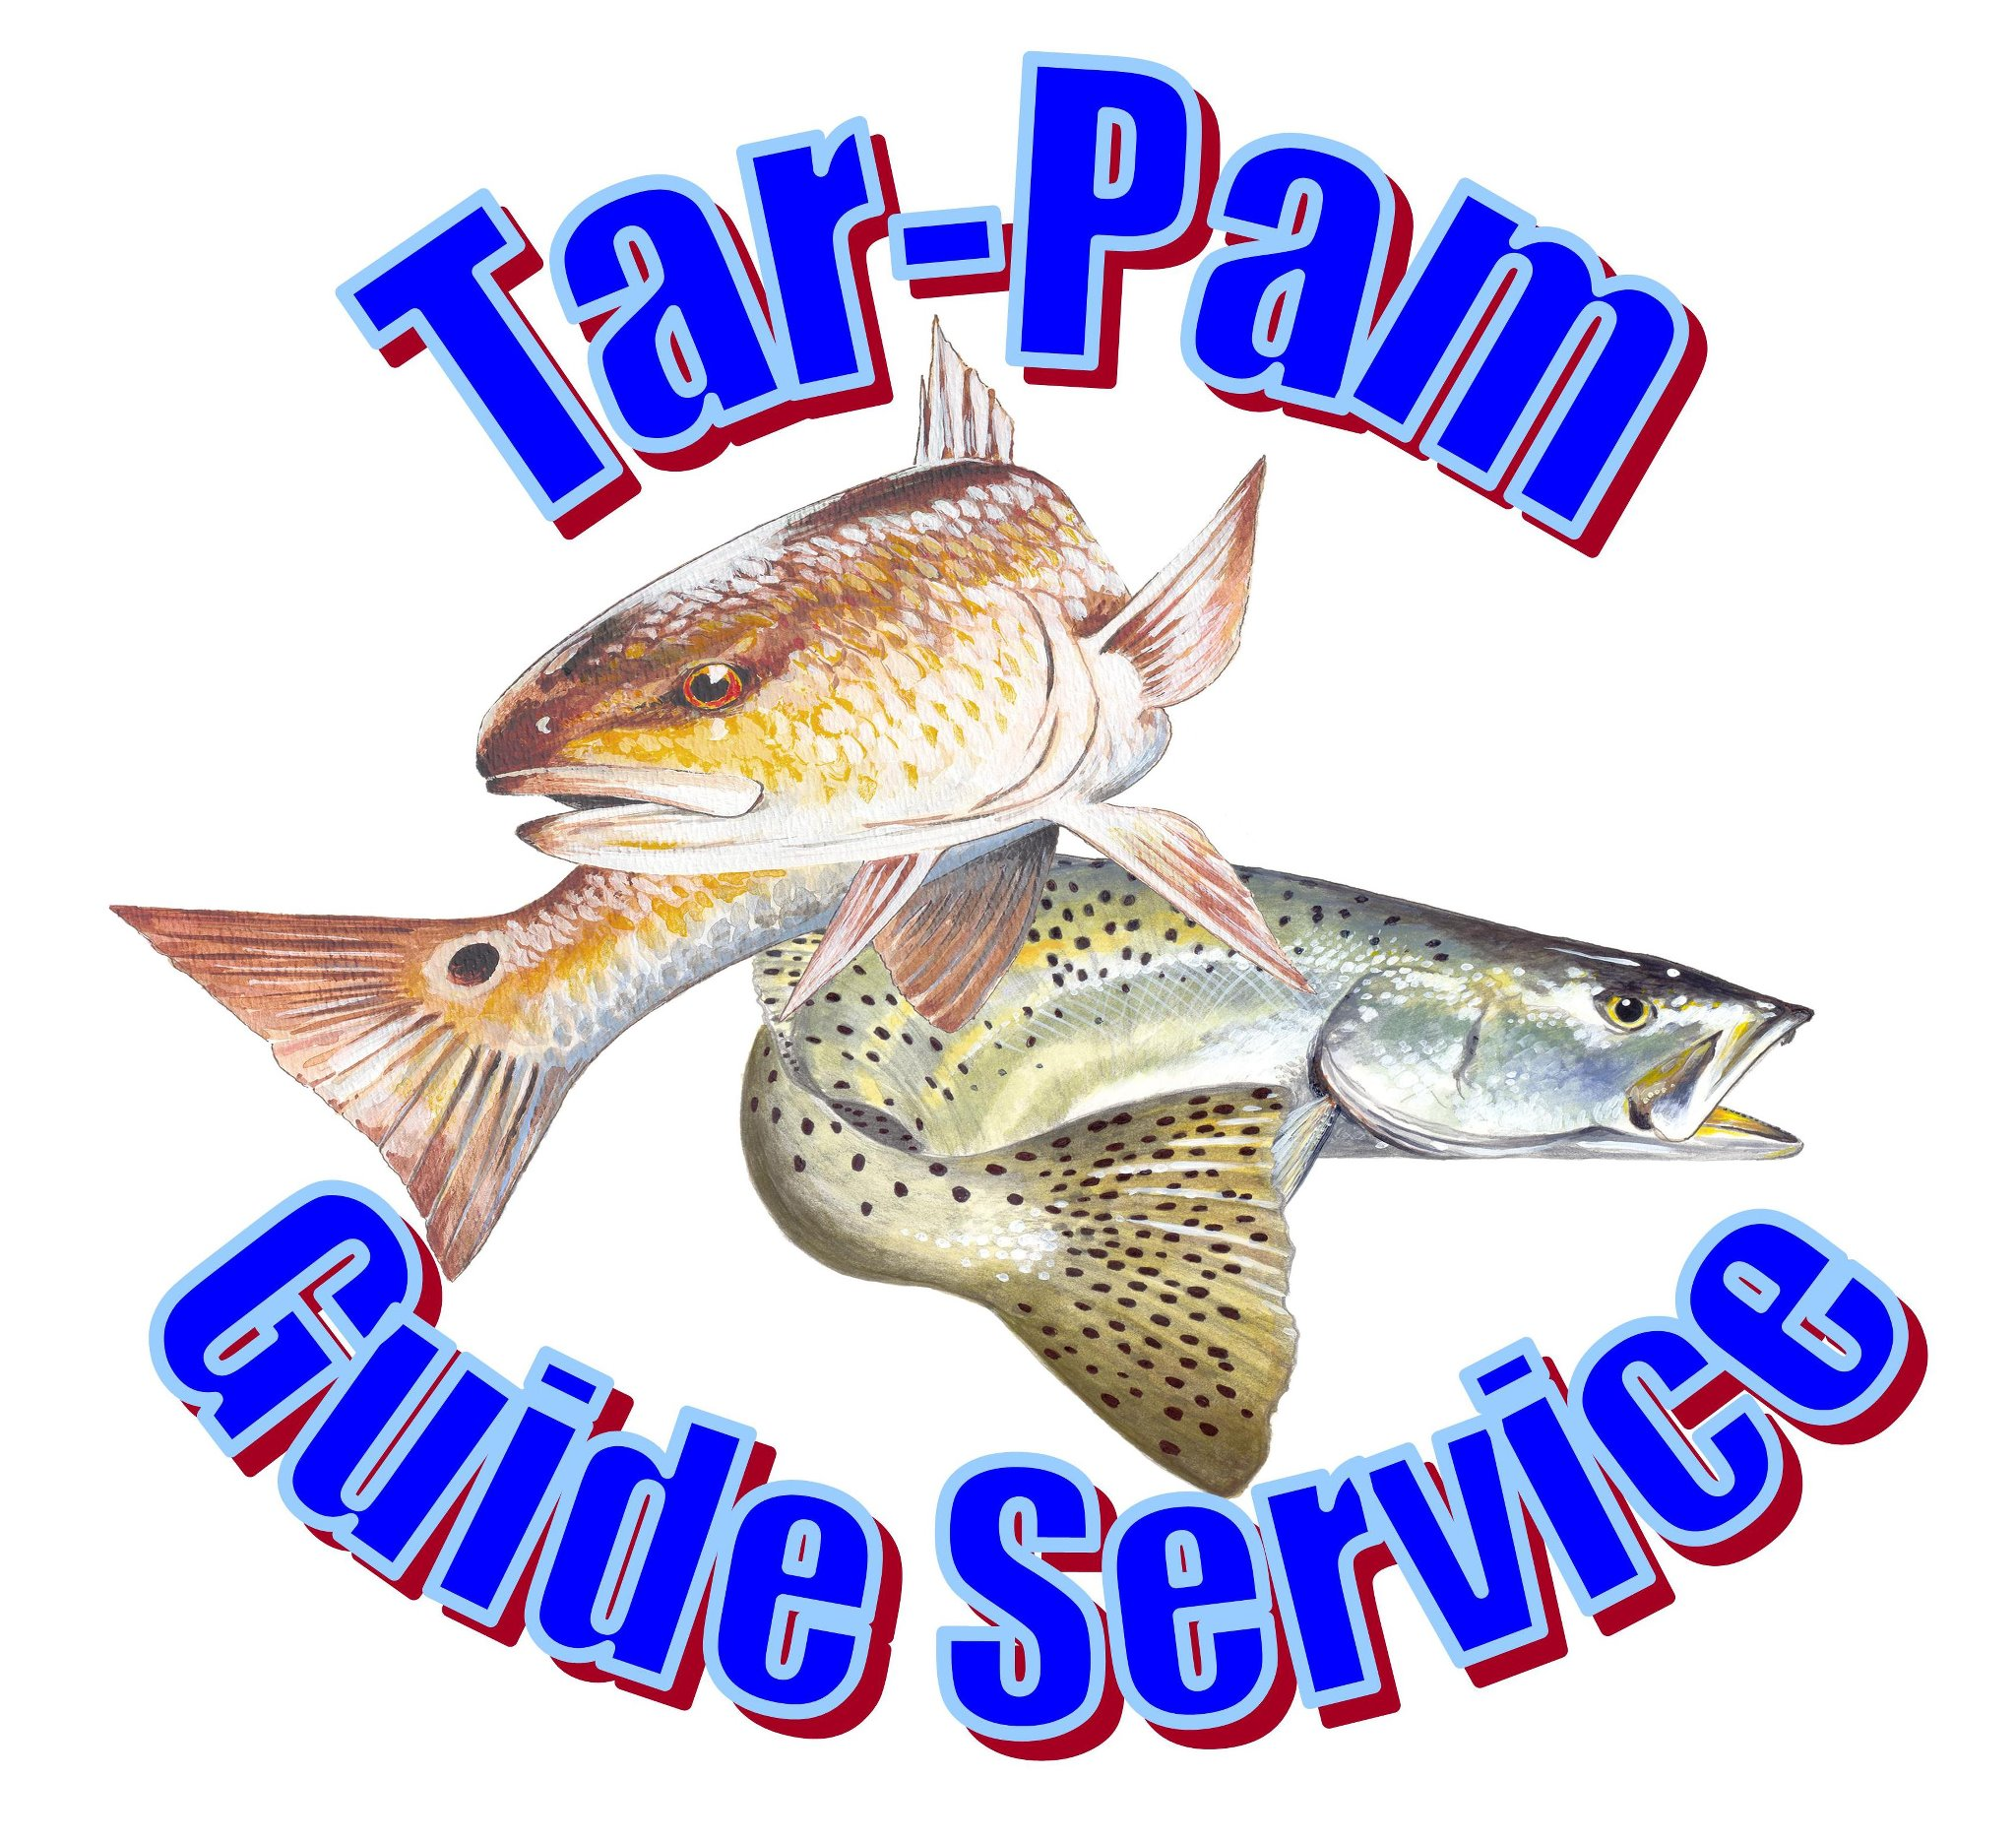 Tar-Pam Guide Service